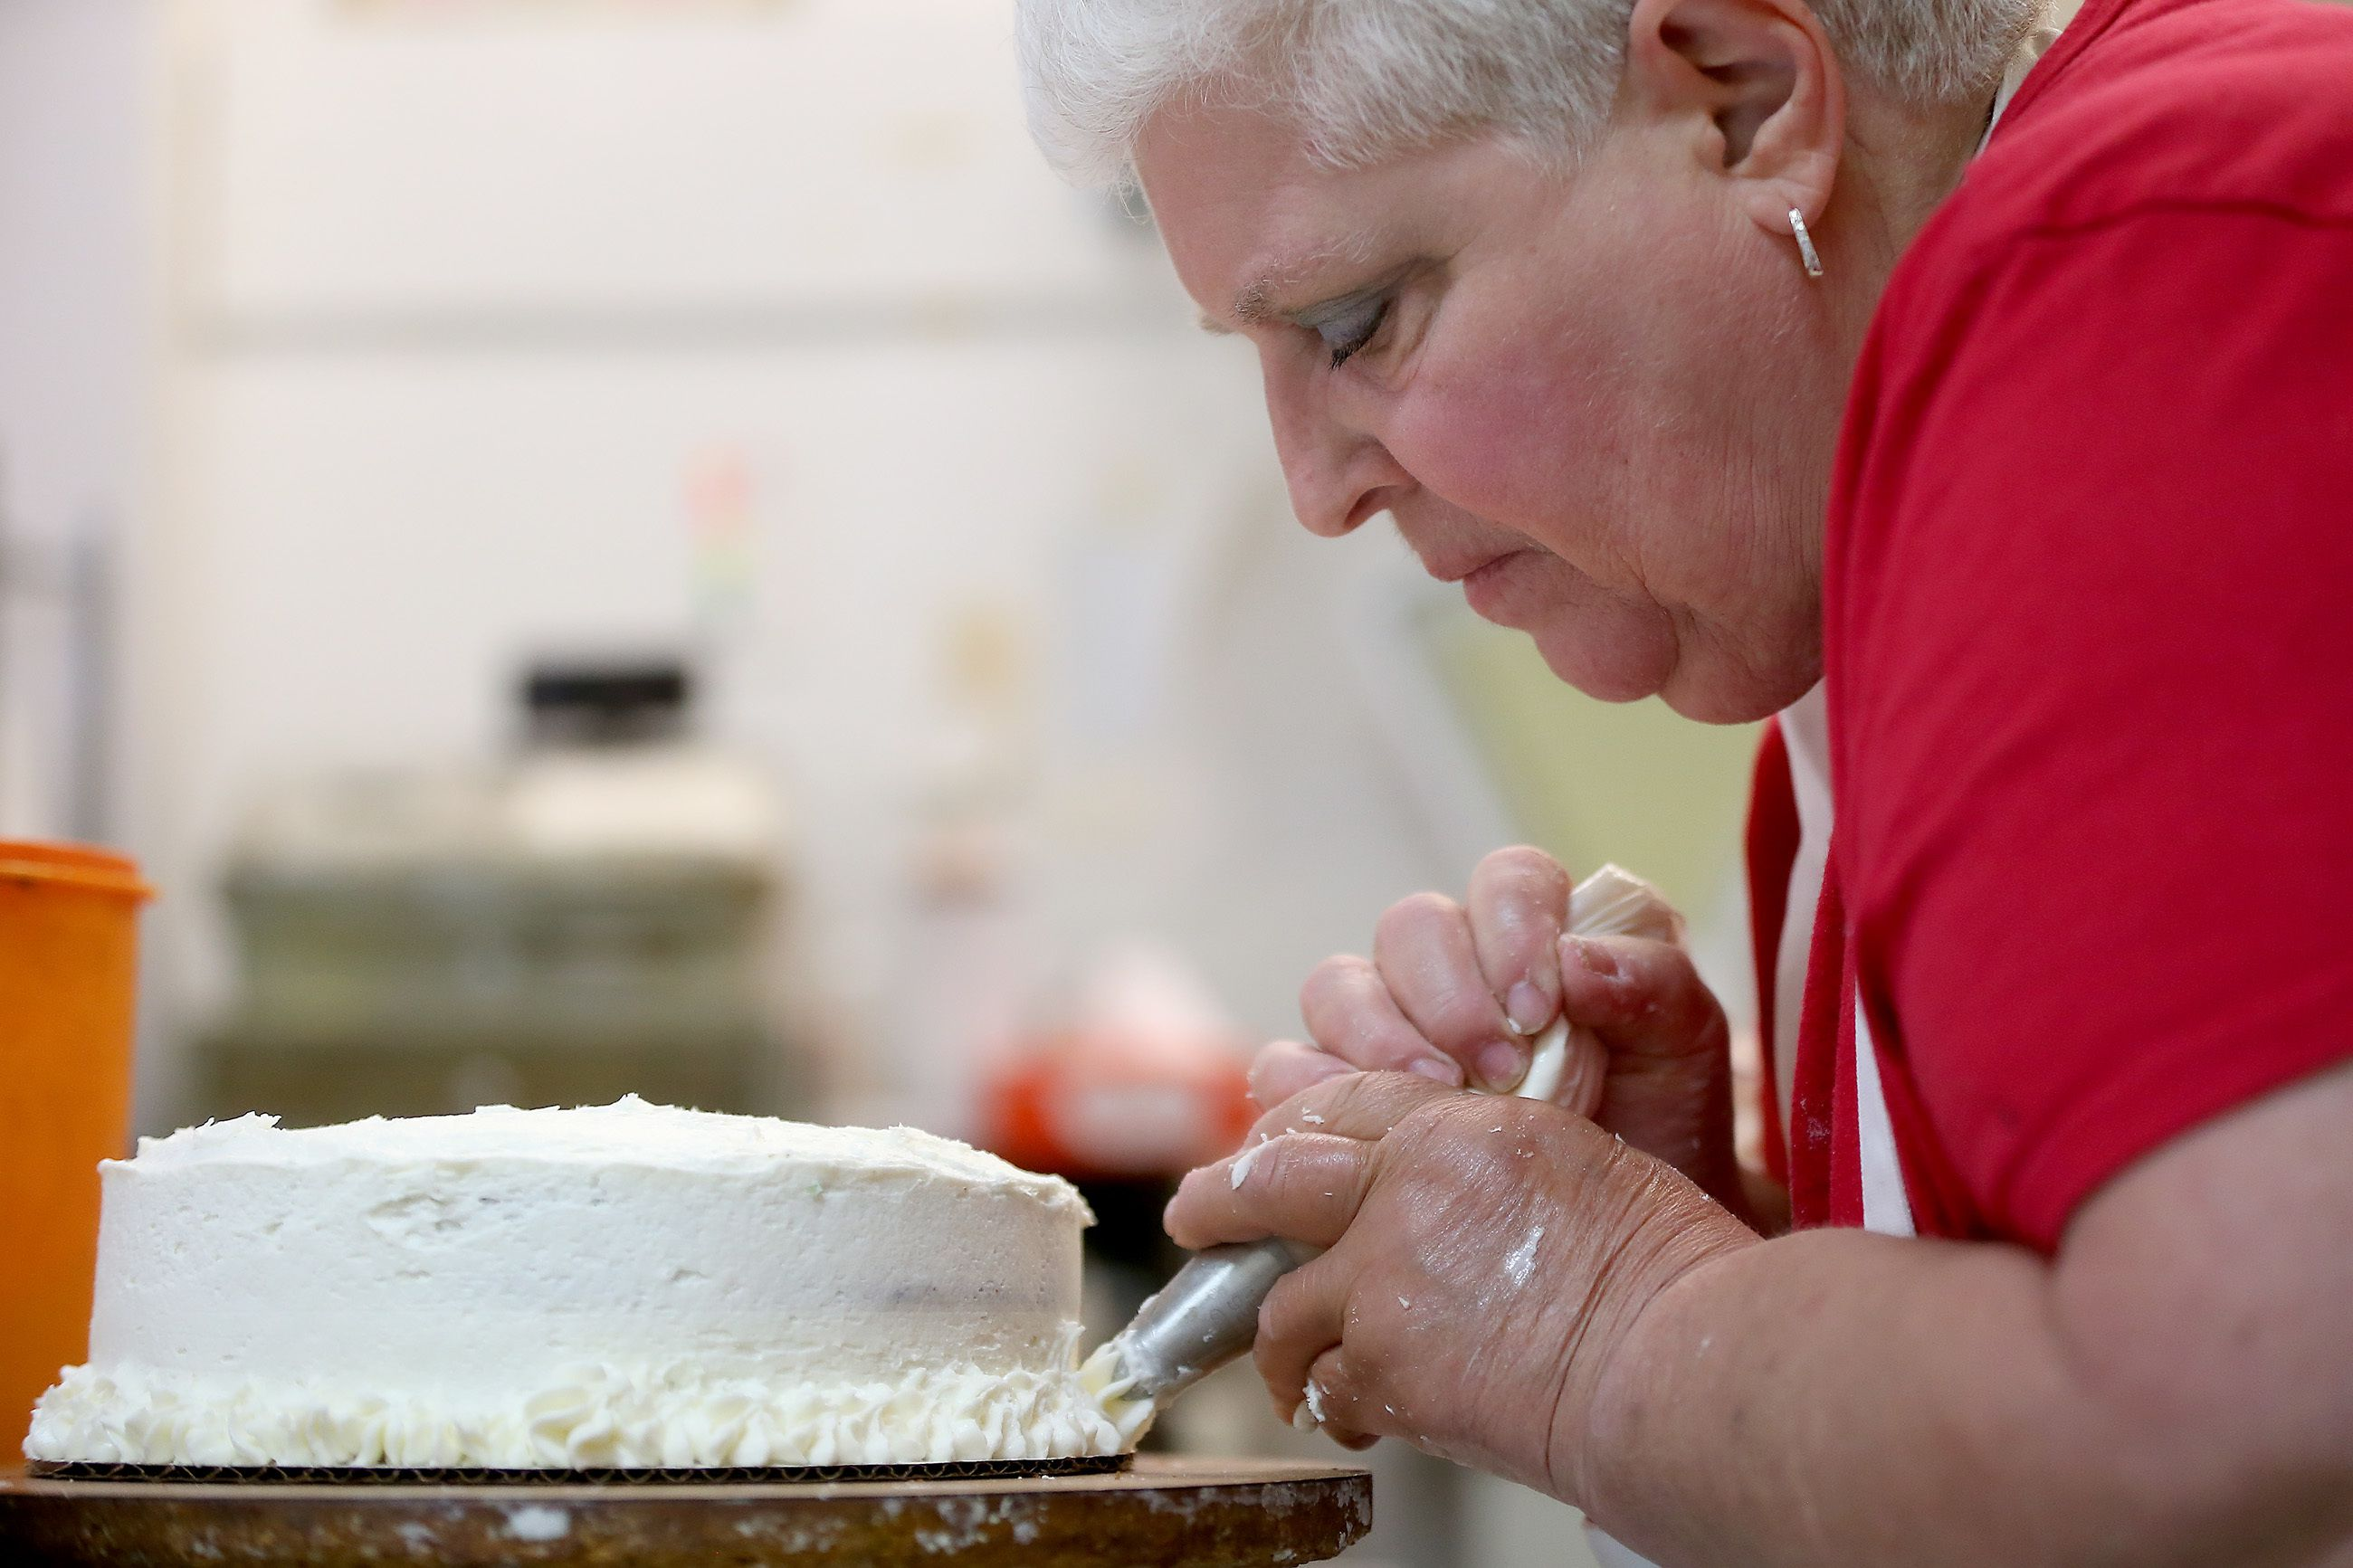 Homemade Goodies By Roz Is Closing And The Ranks Of Kosher Bakeries Dwindles